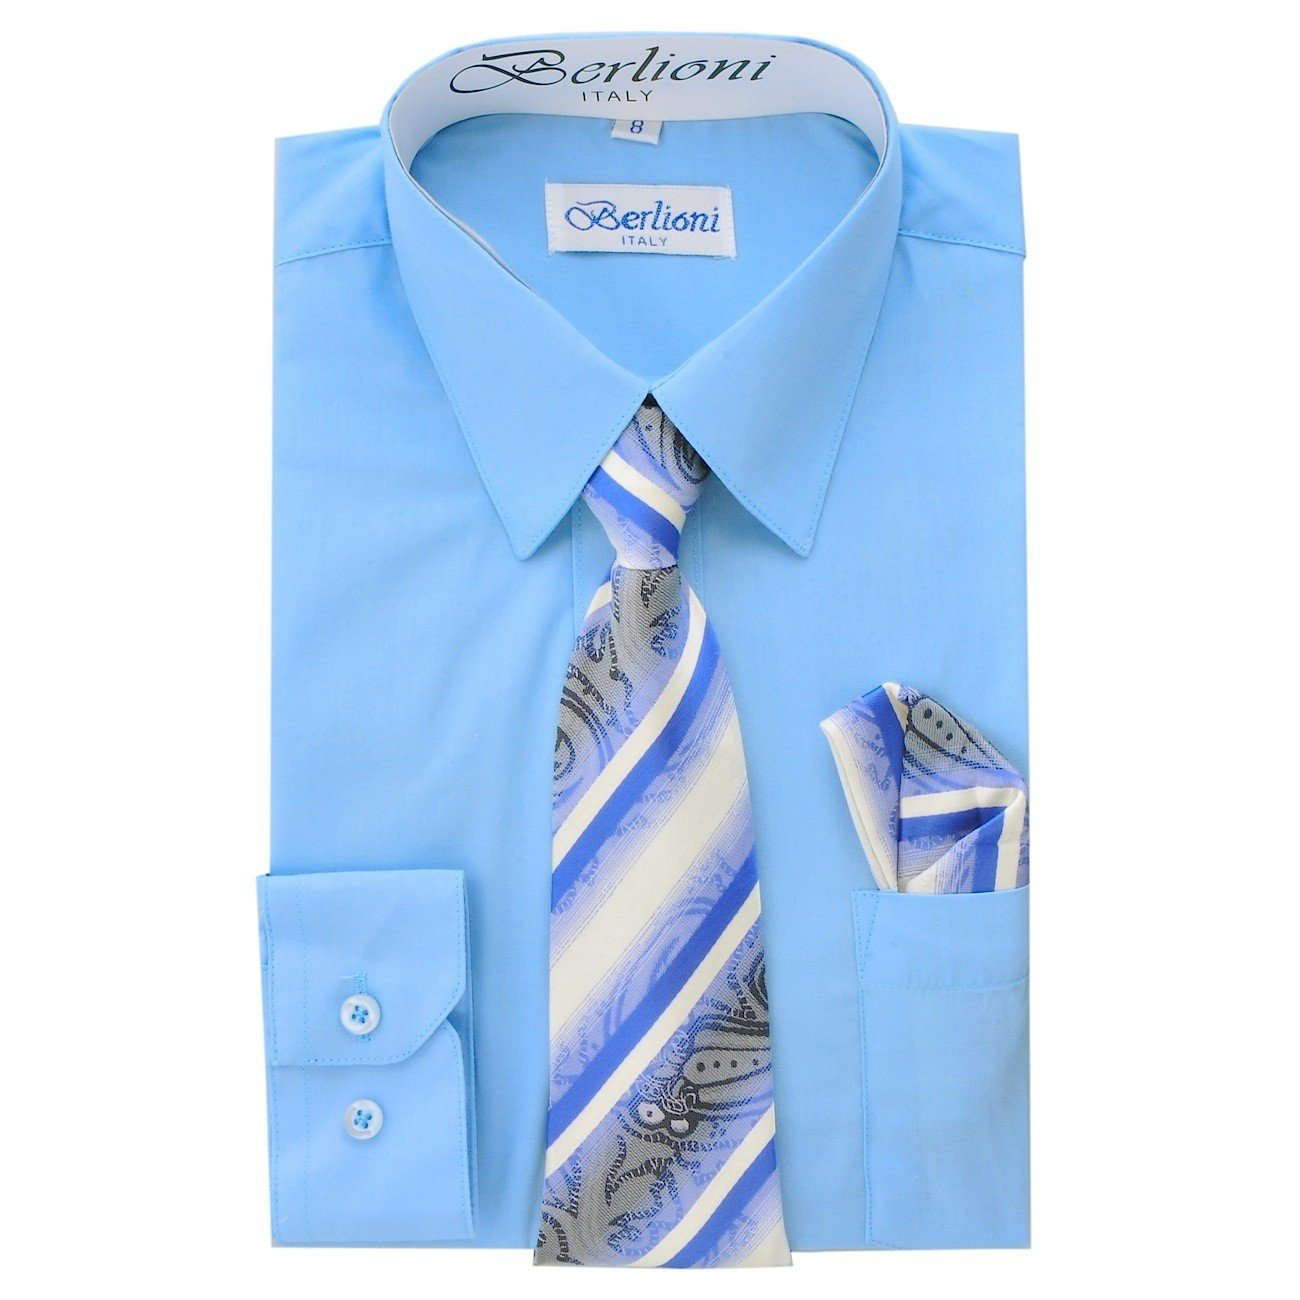 Boy's Dress Shirt, Necktie, and Hanky Set - Light Blue, Size 18 Boy' s Dress Shirt N-704